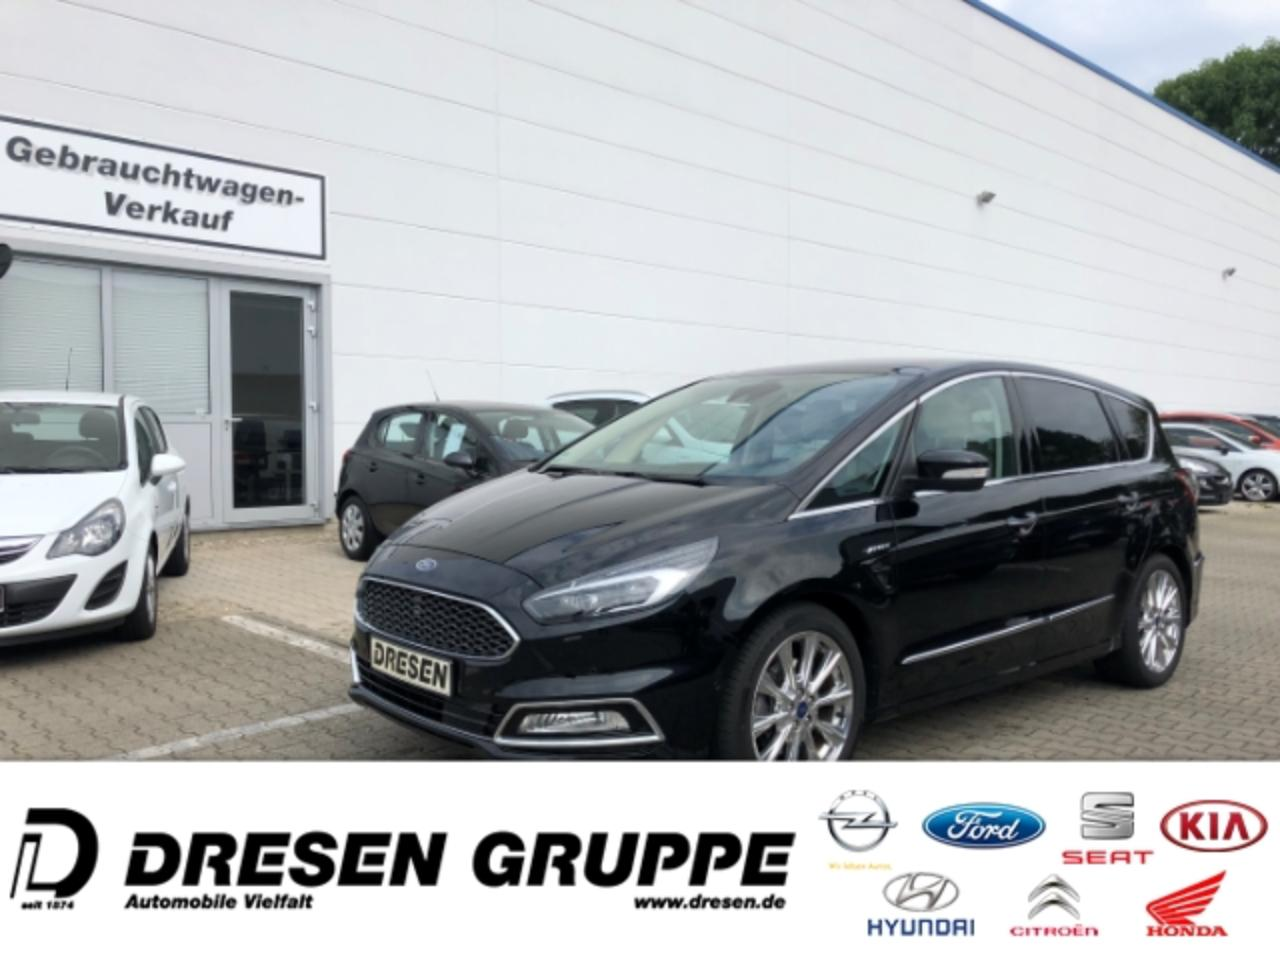 Ford S-Max Vignale Frontkamera+AHK+LED+StandHZG+ACC